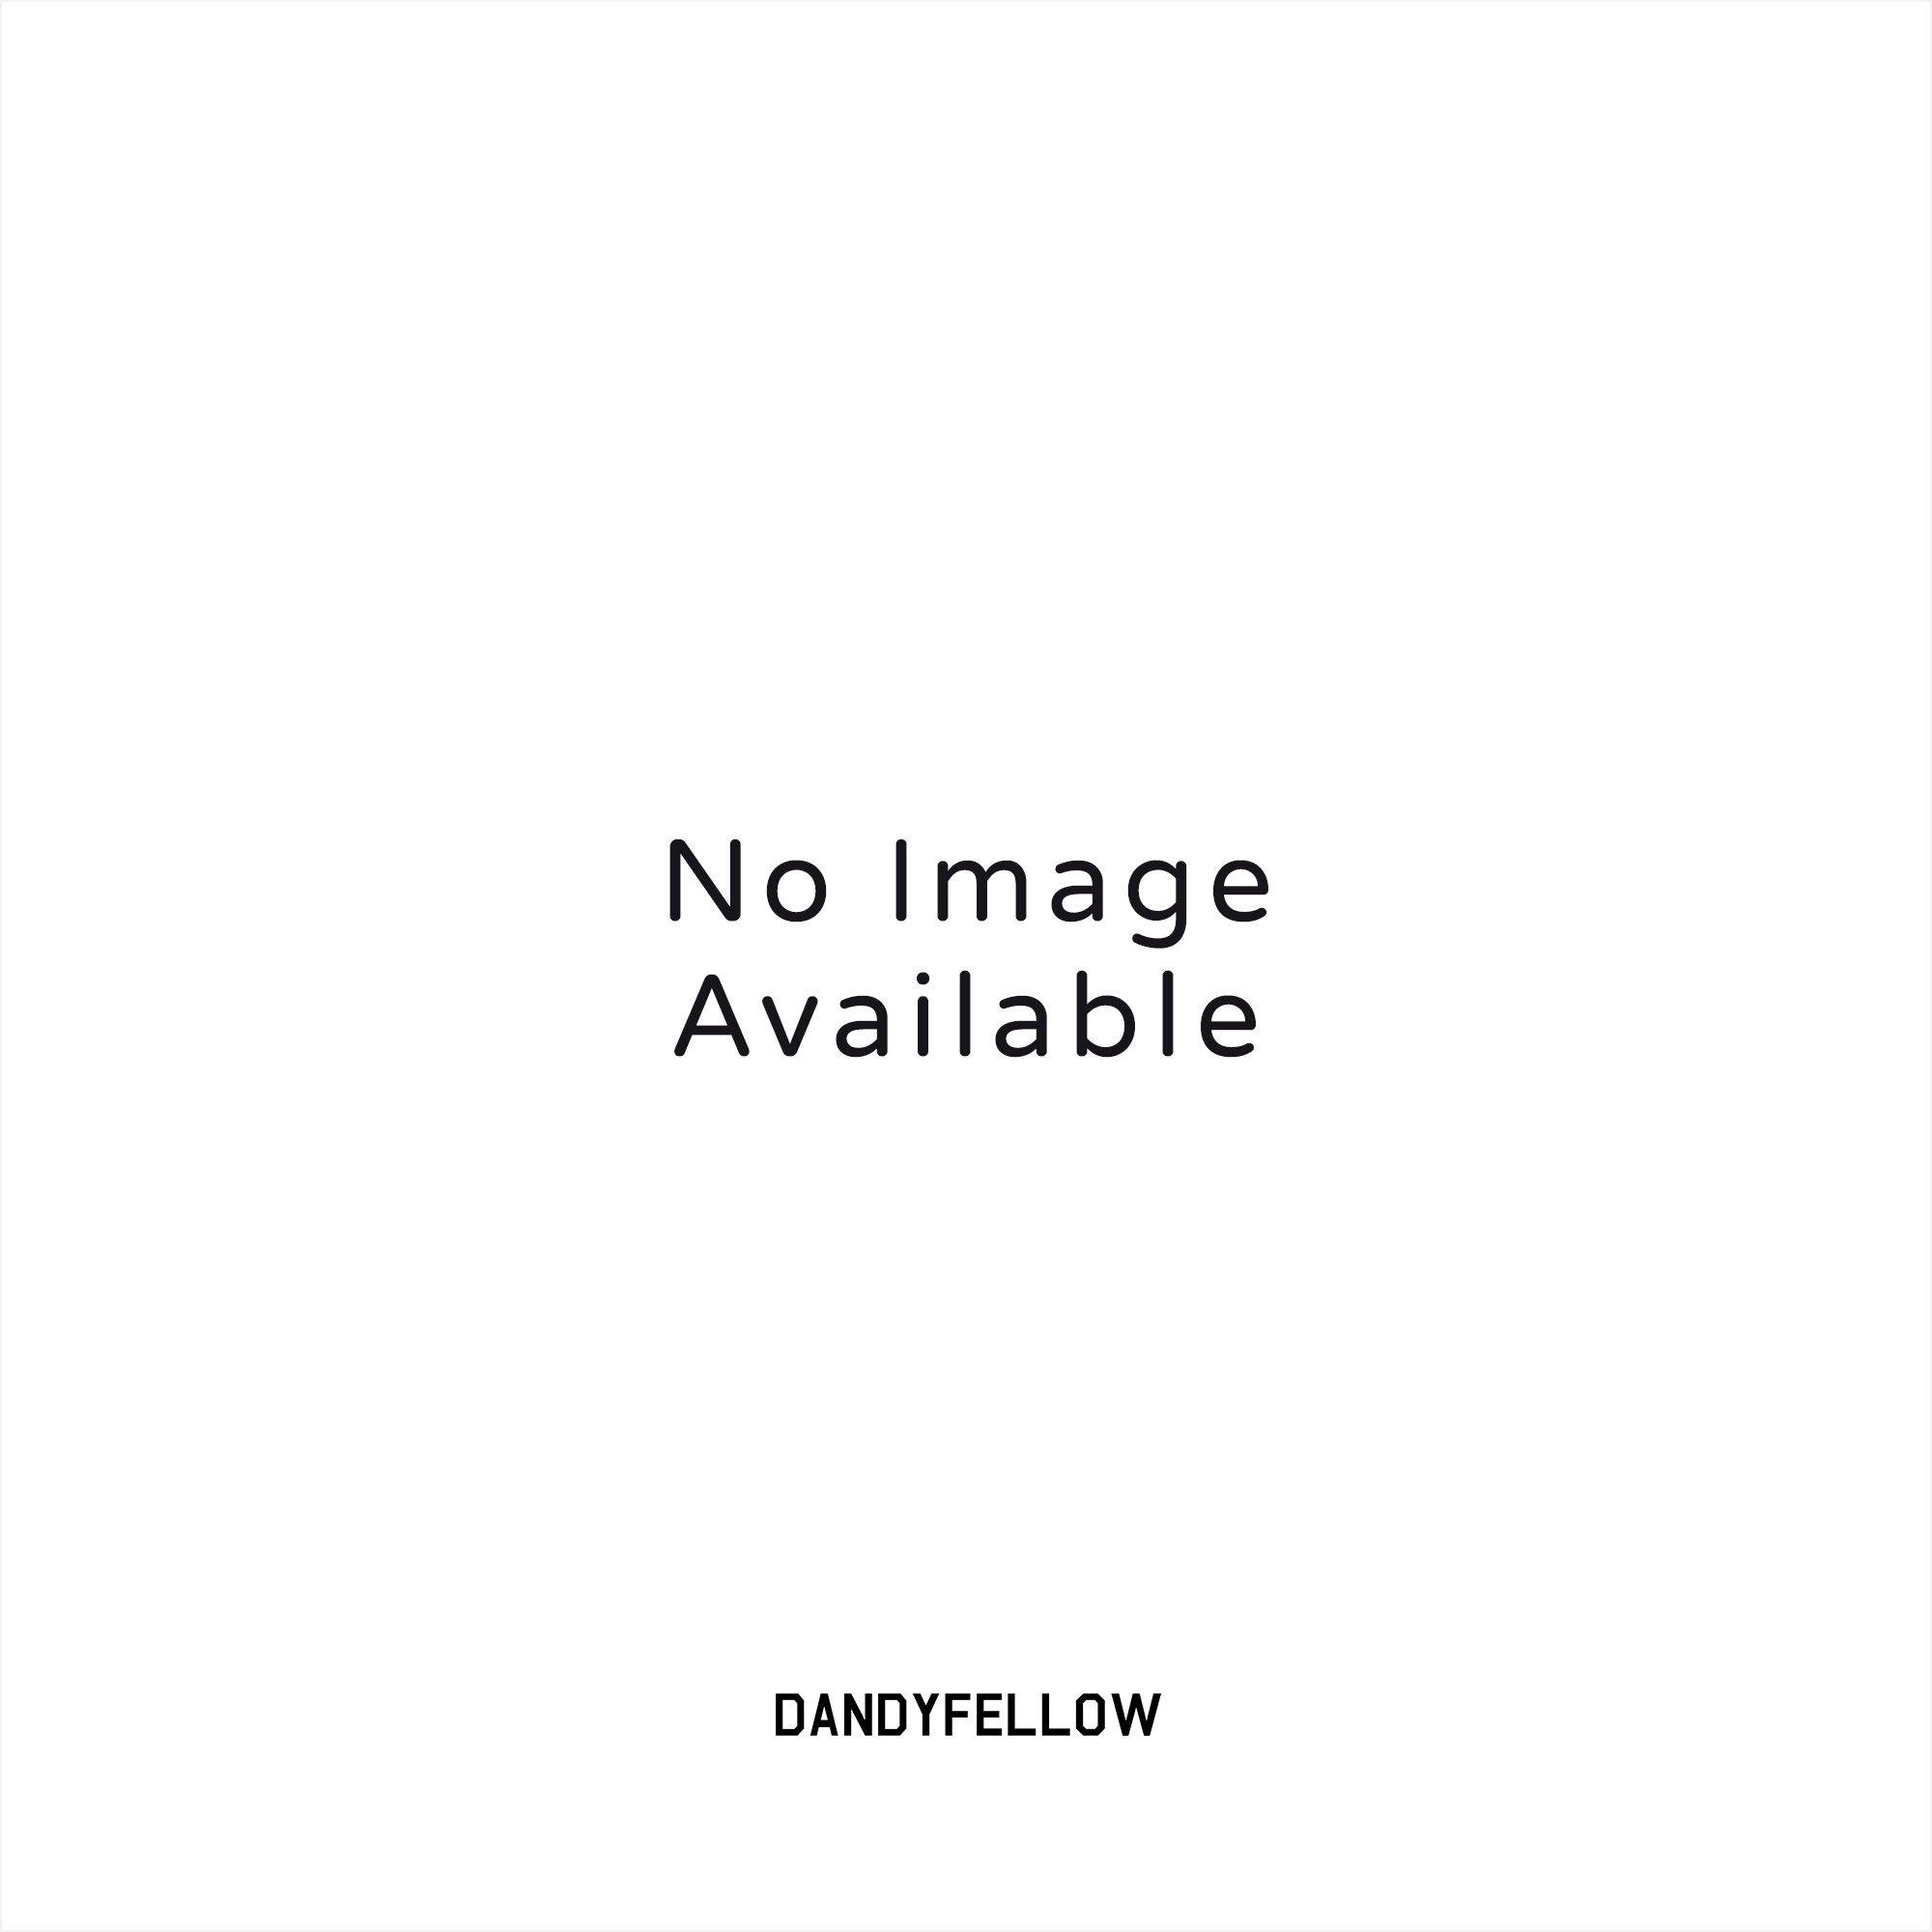 2f563d63cad Adidas Y-3 Kaiwa (White   Black) at Dandy Fellow